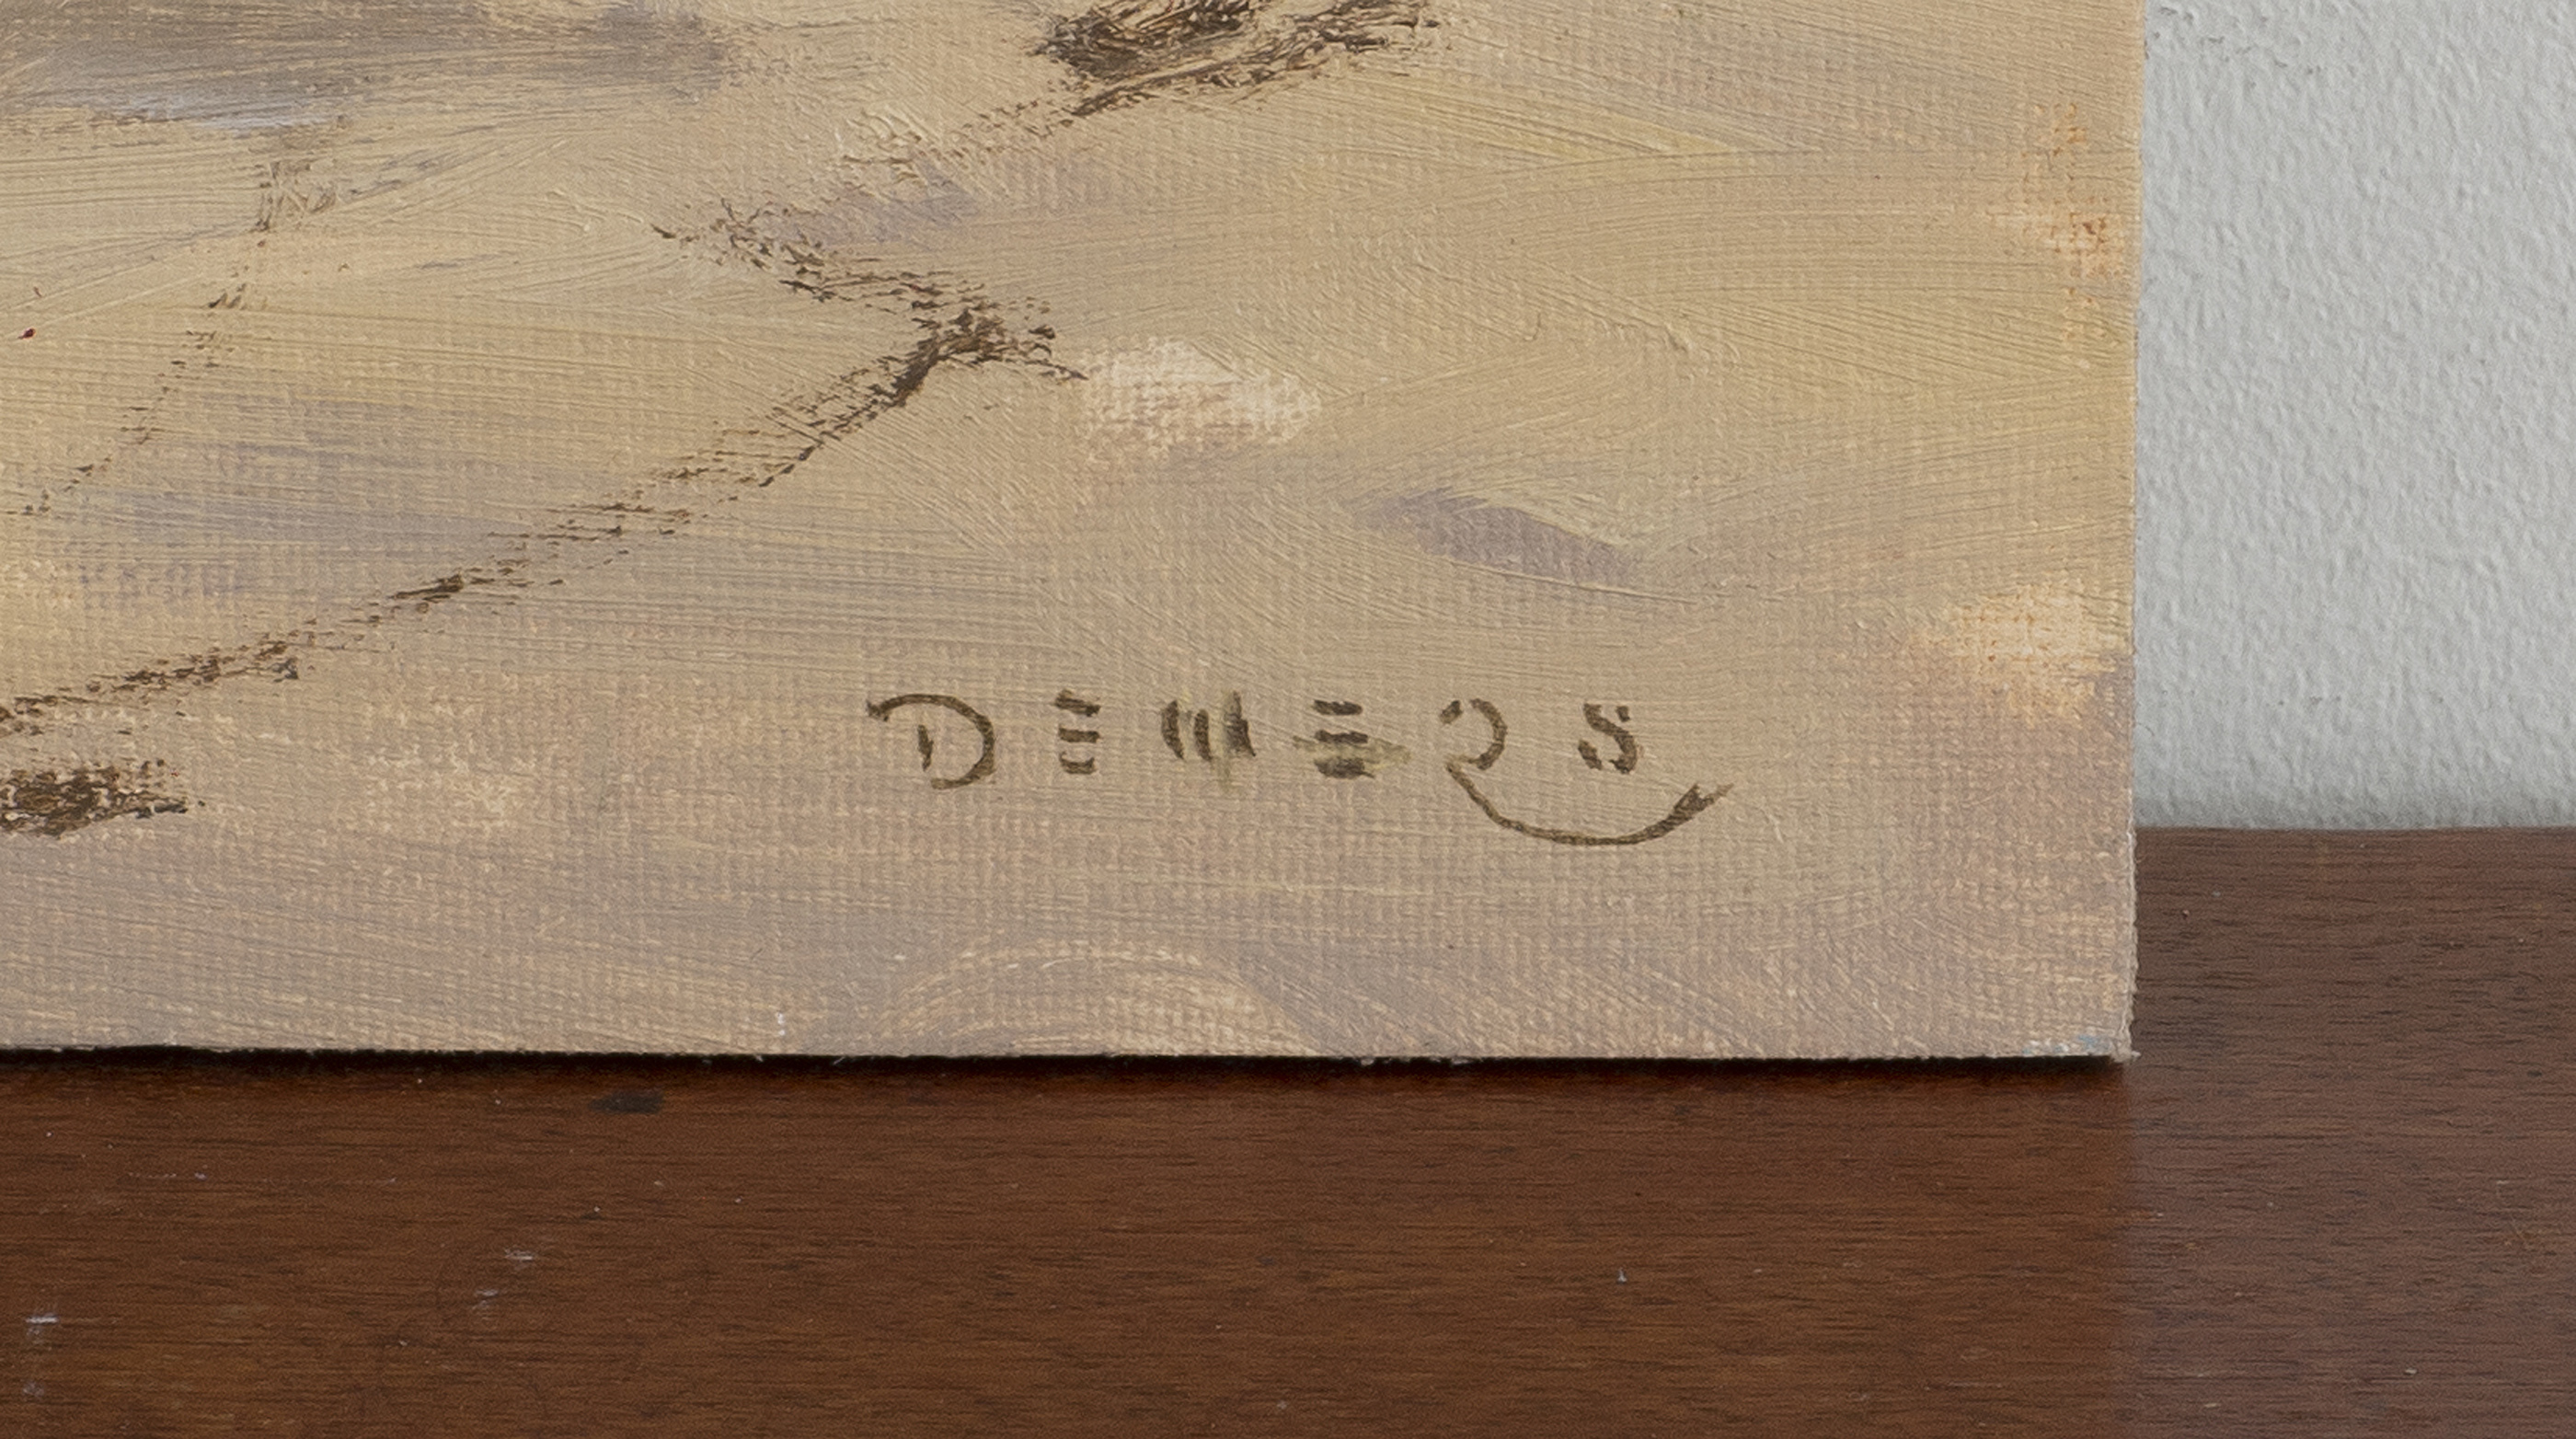 Demers 37336 detail 1